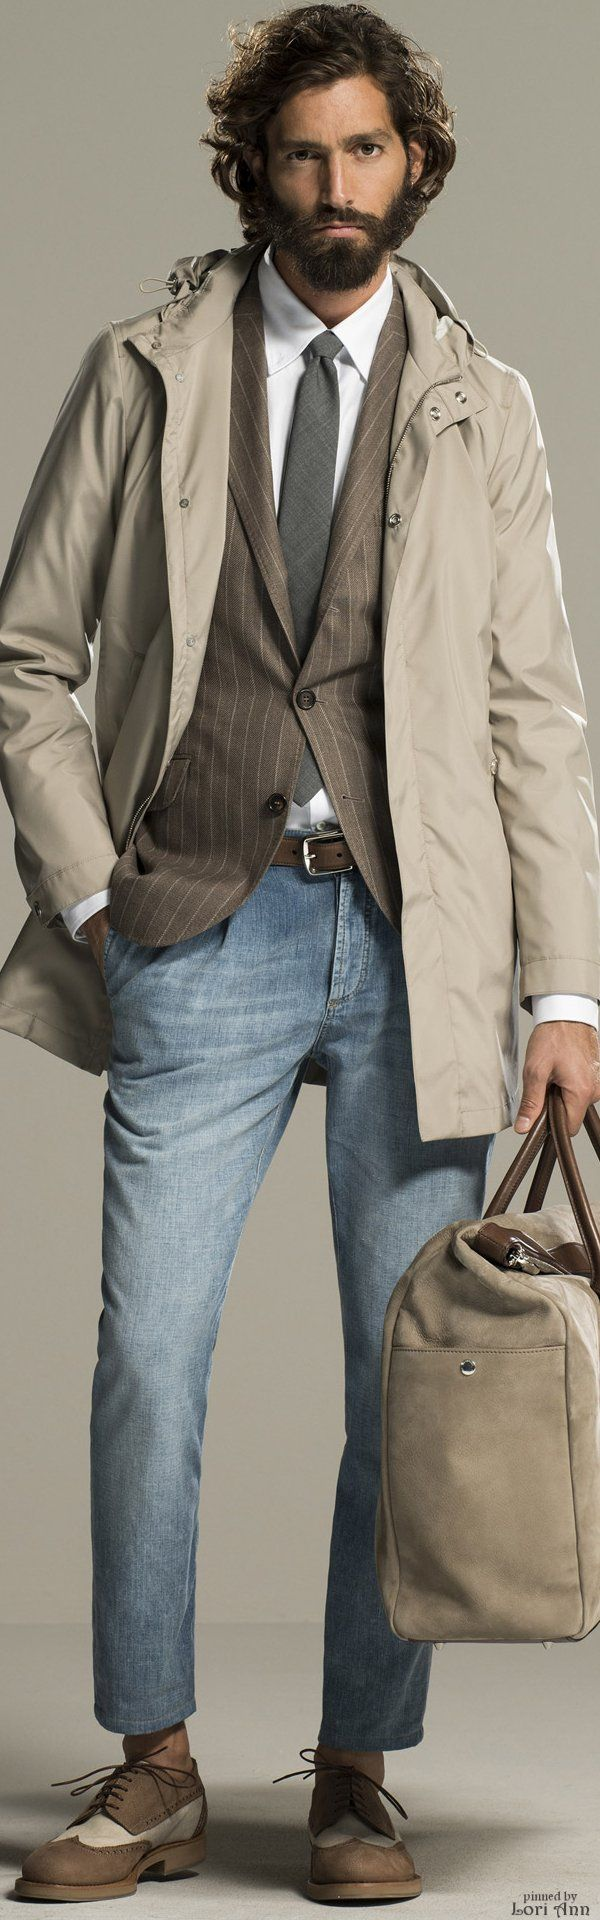 Brunello Cucinelli Spring 2016 | Men's Fashion | Menswear | Men's Casual Outfit for the Office | Moda Masculina | Shop at designerclothingfans.com